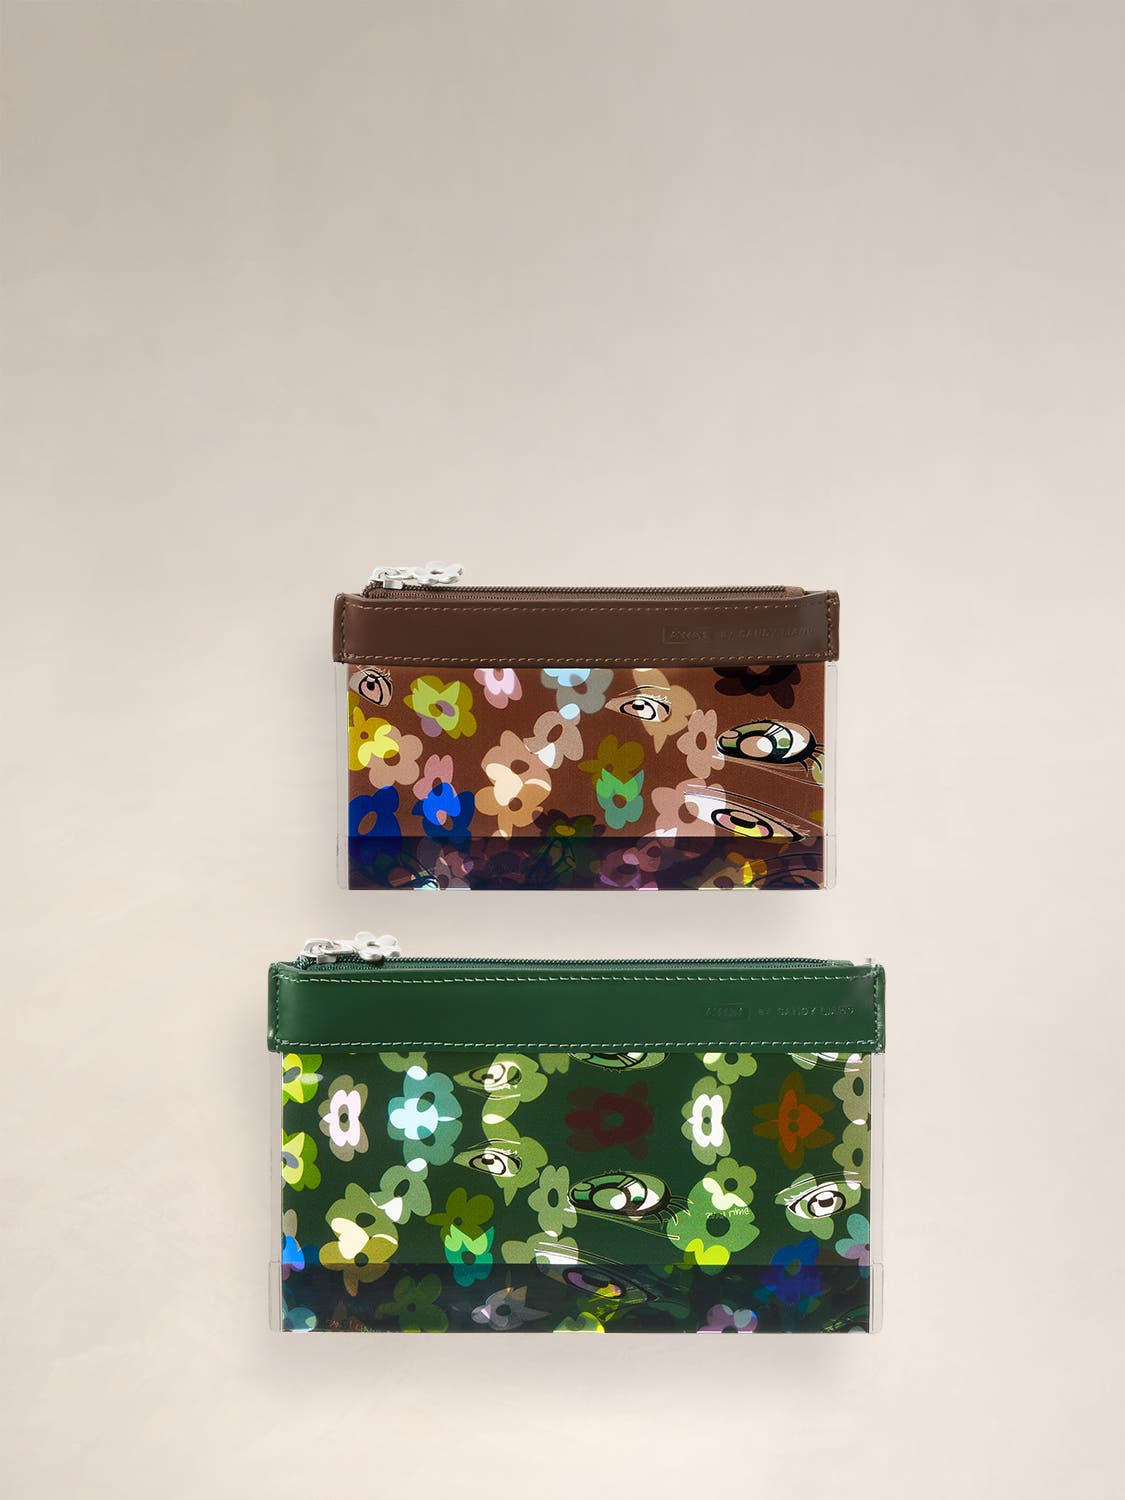 Two Travel Pouch Sets in small and large sizes, in green and brown shades with a custom floral pattern